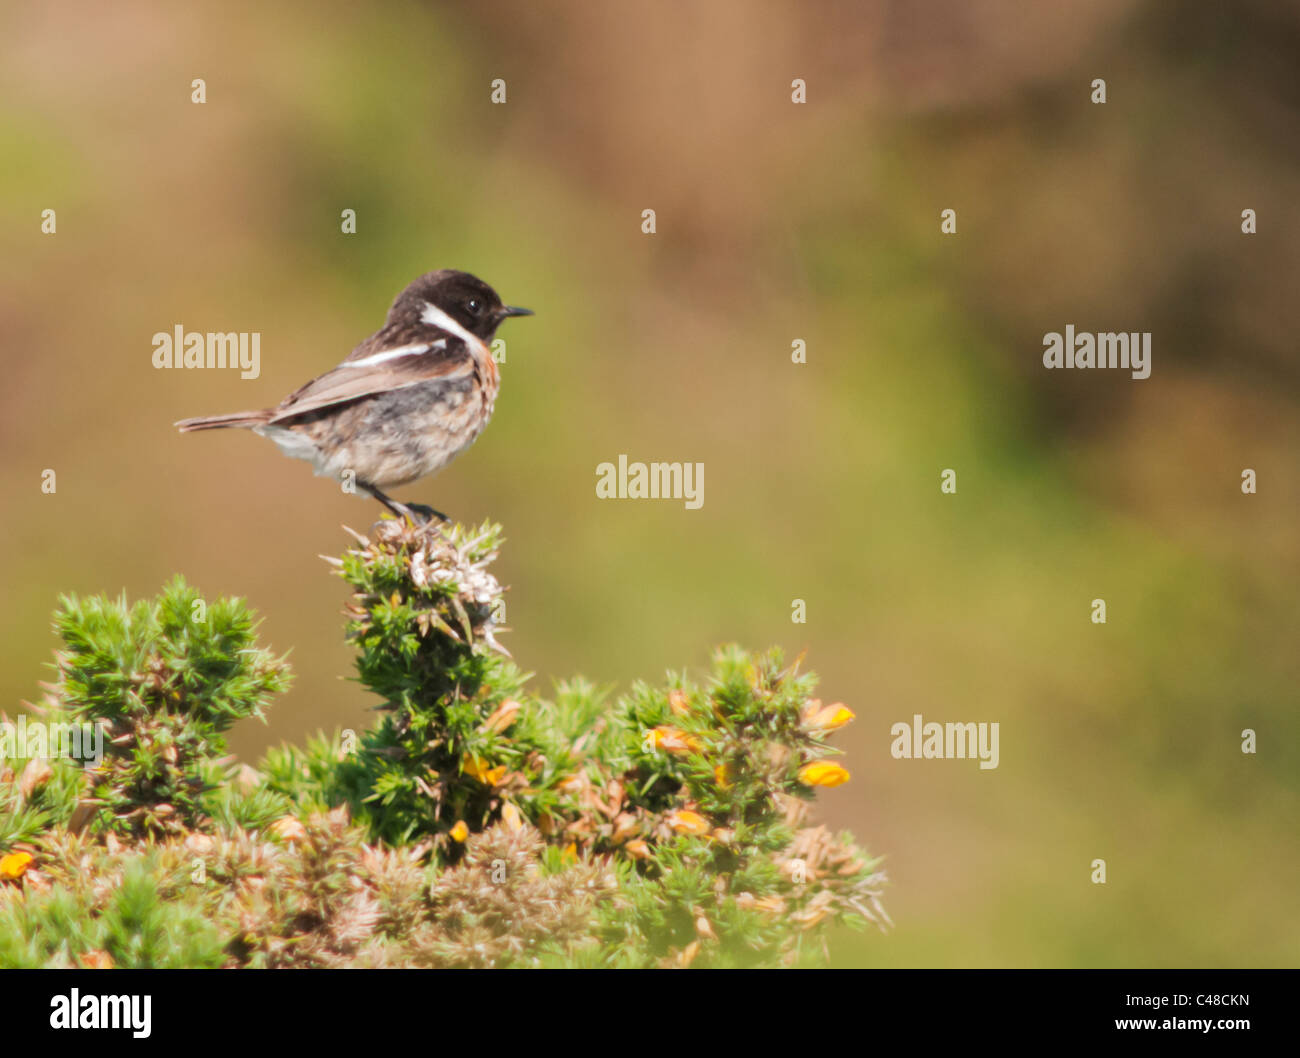 Perched Male Stonechat (Saxicola torquata) on top of Gorse Bush, Pembrokeshire, Wales - Stock Image